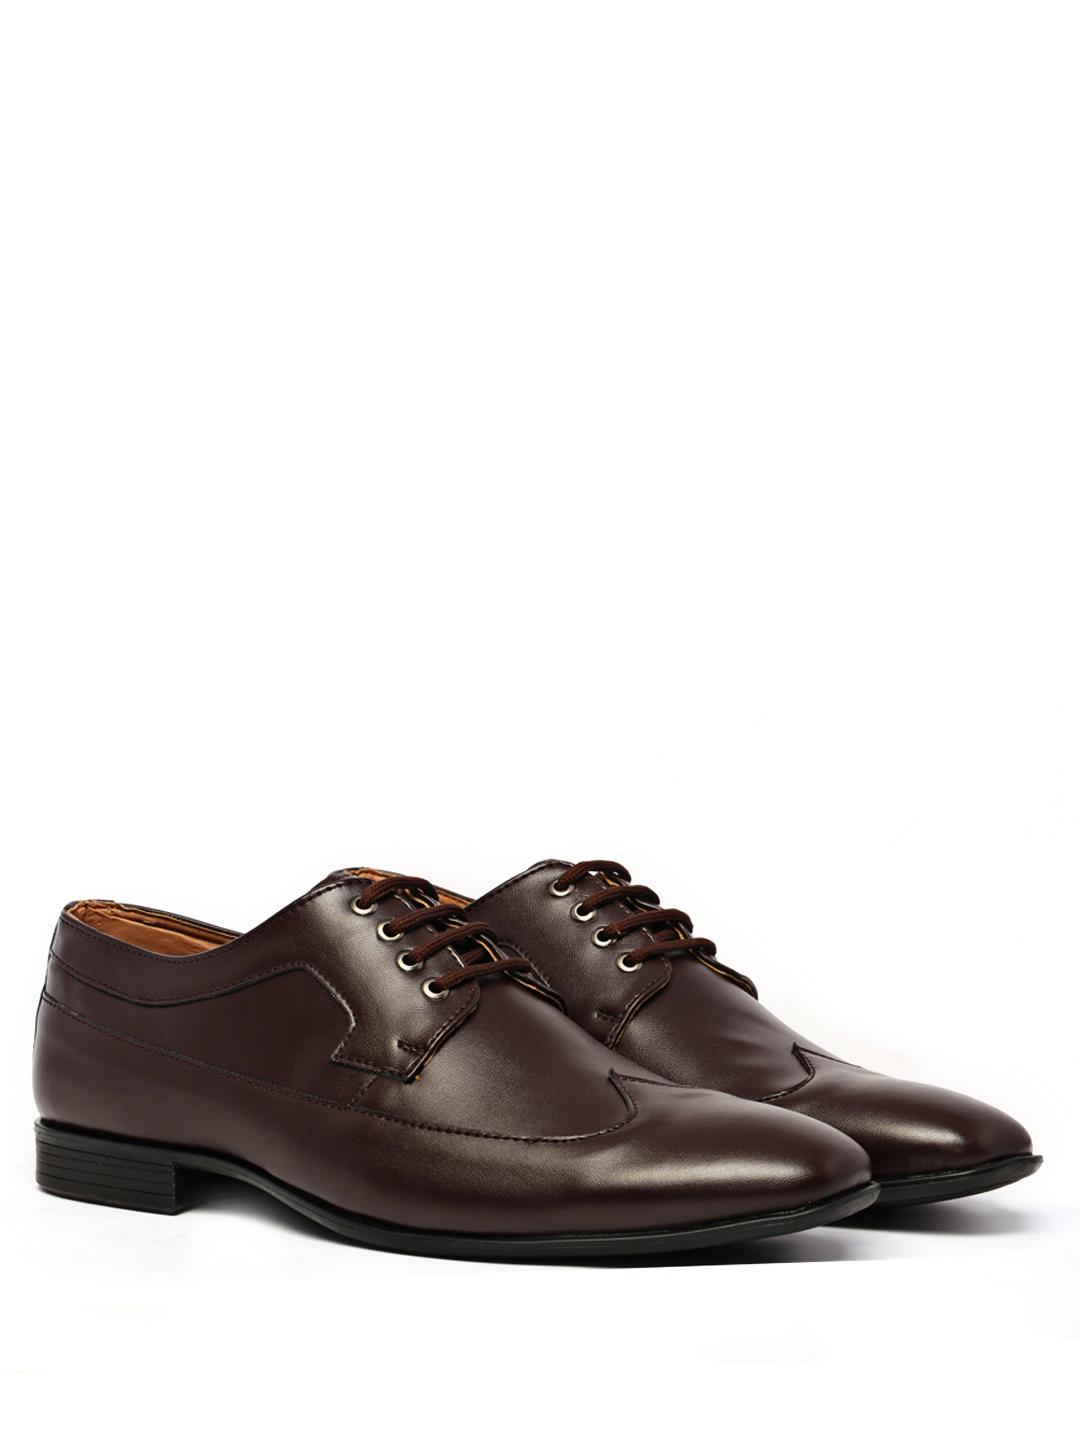 KLEAT Brown Lace Up Derby Formal Shoes 1